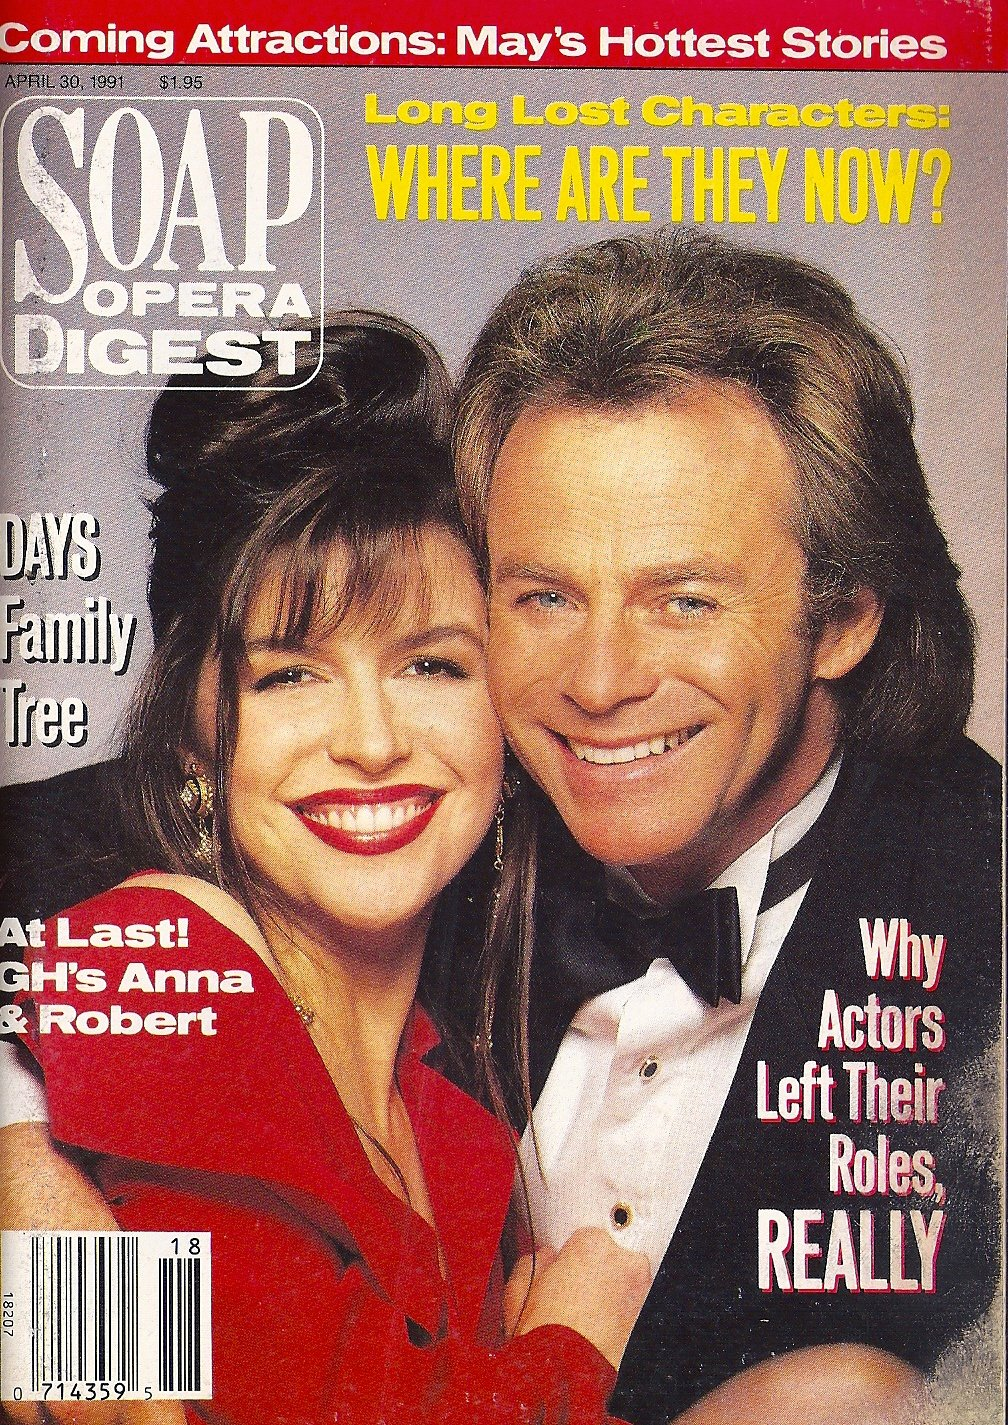 Finola Hughes Tristan Rogers General Hospital Barbara Stock Why Actors Really Left Their Roles April 30 1991 Soap Opera Digest Magazine Soap Opera Digest Meredith Berlin Amazon Com Books